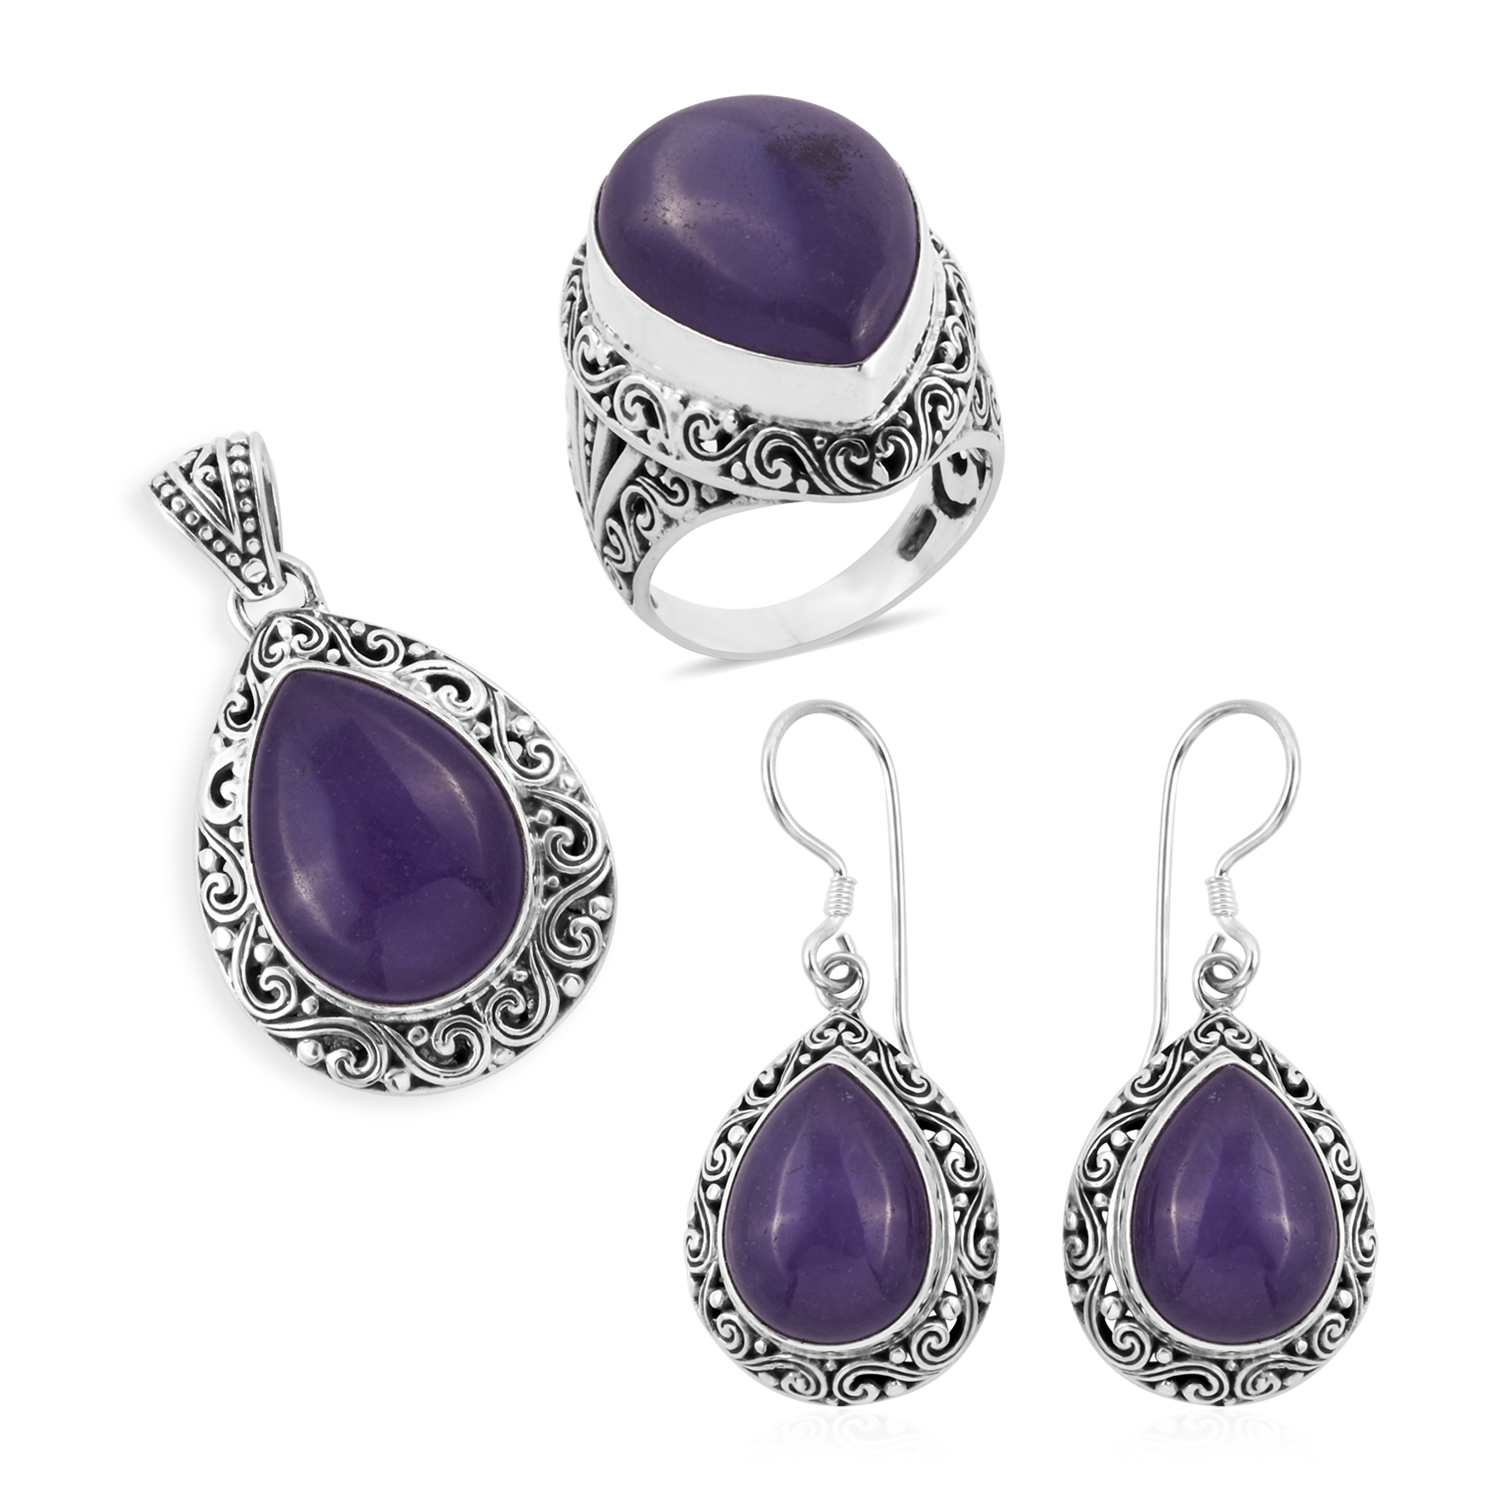 Bali Legacy Collection Burmese Lavender Jade Sterling Silver Earrings Ring Size 10 And Pendant Without Chain Tgw 53 52 Cts Lc